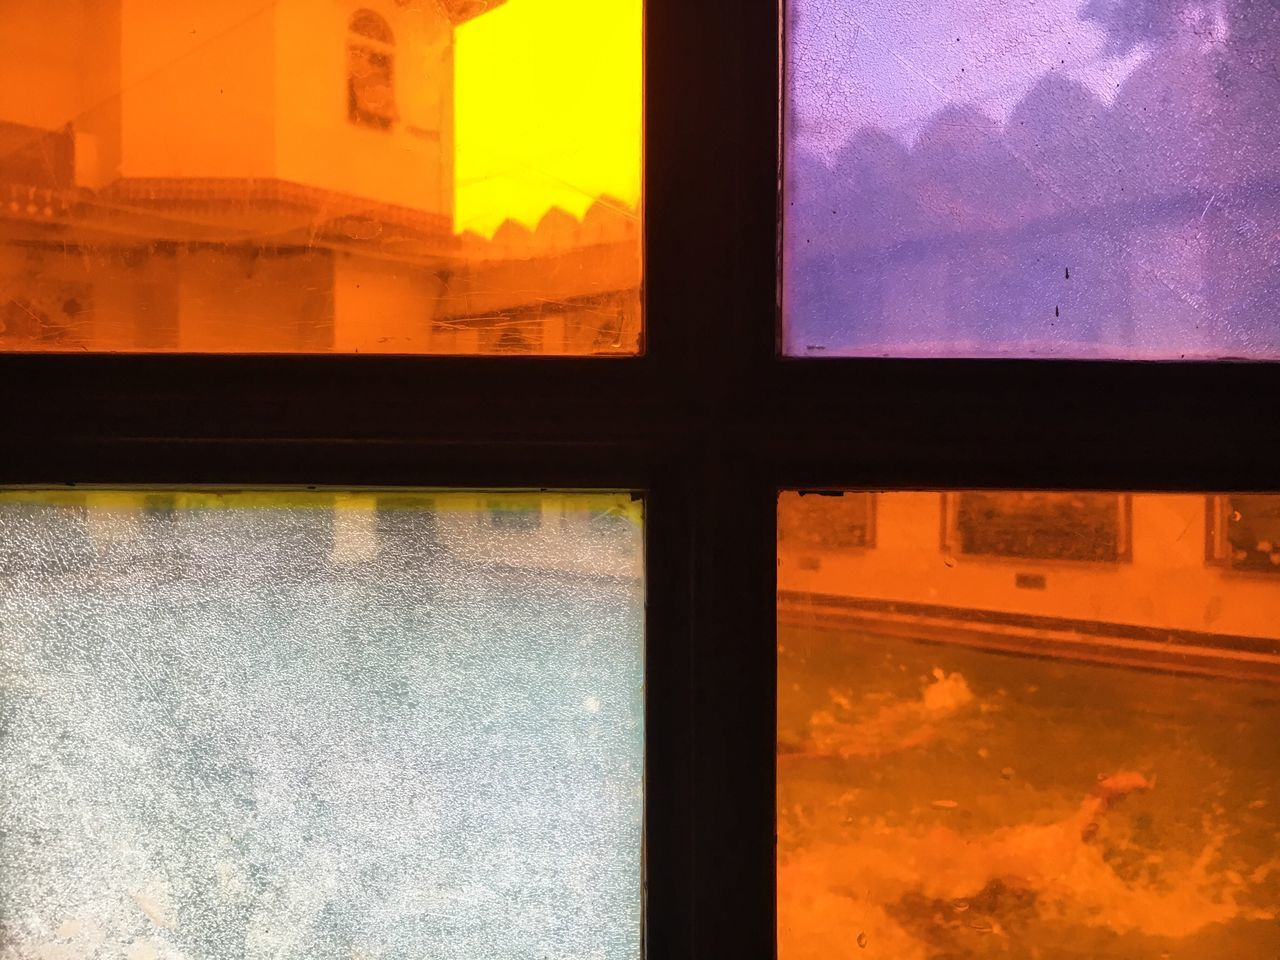 window, glass - material, indoors, transparent, no people, architecture, built structure, water, nature, sunset, sky, orange color, reflection, building, cloud - sky, close-up, day, glass, window frame